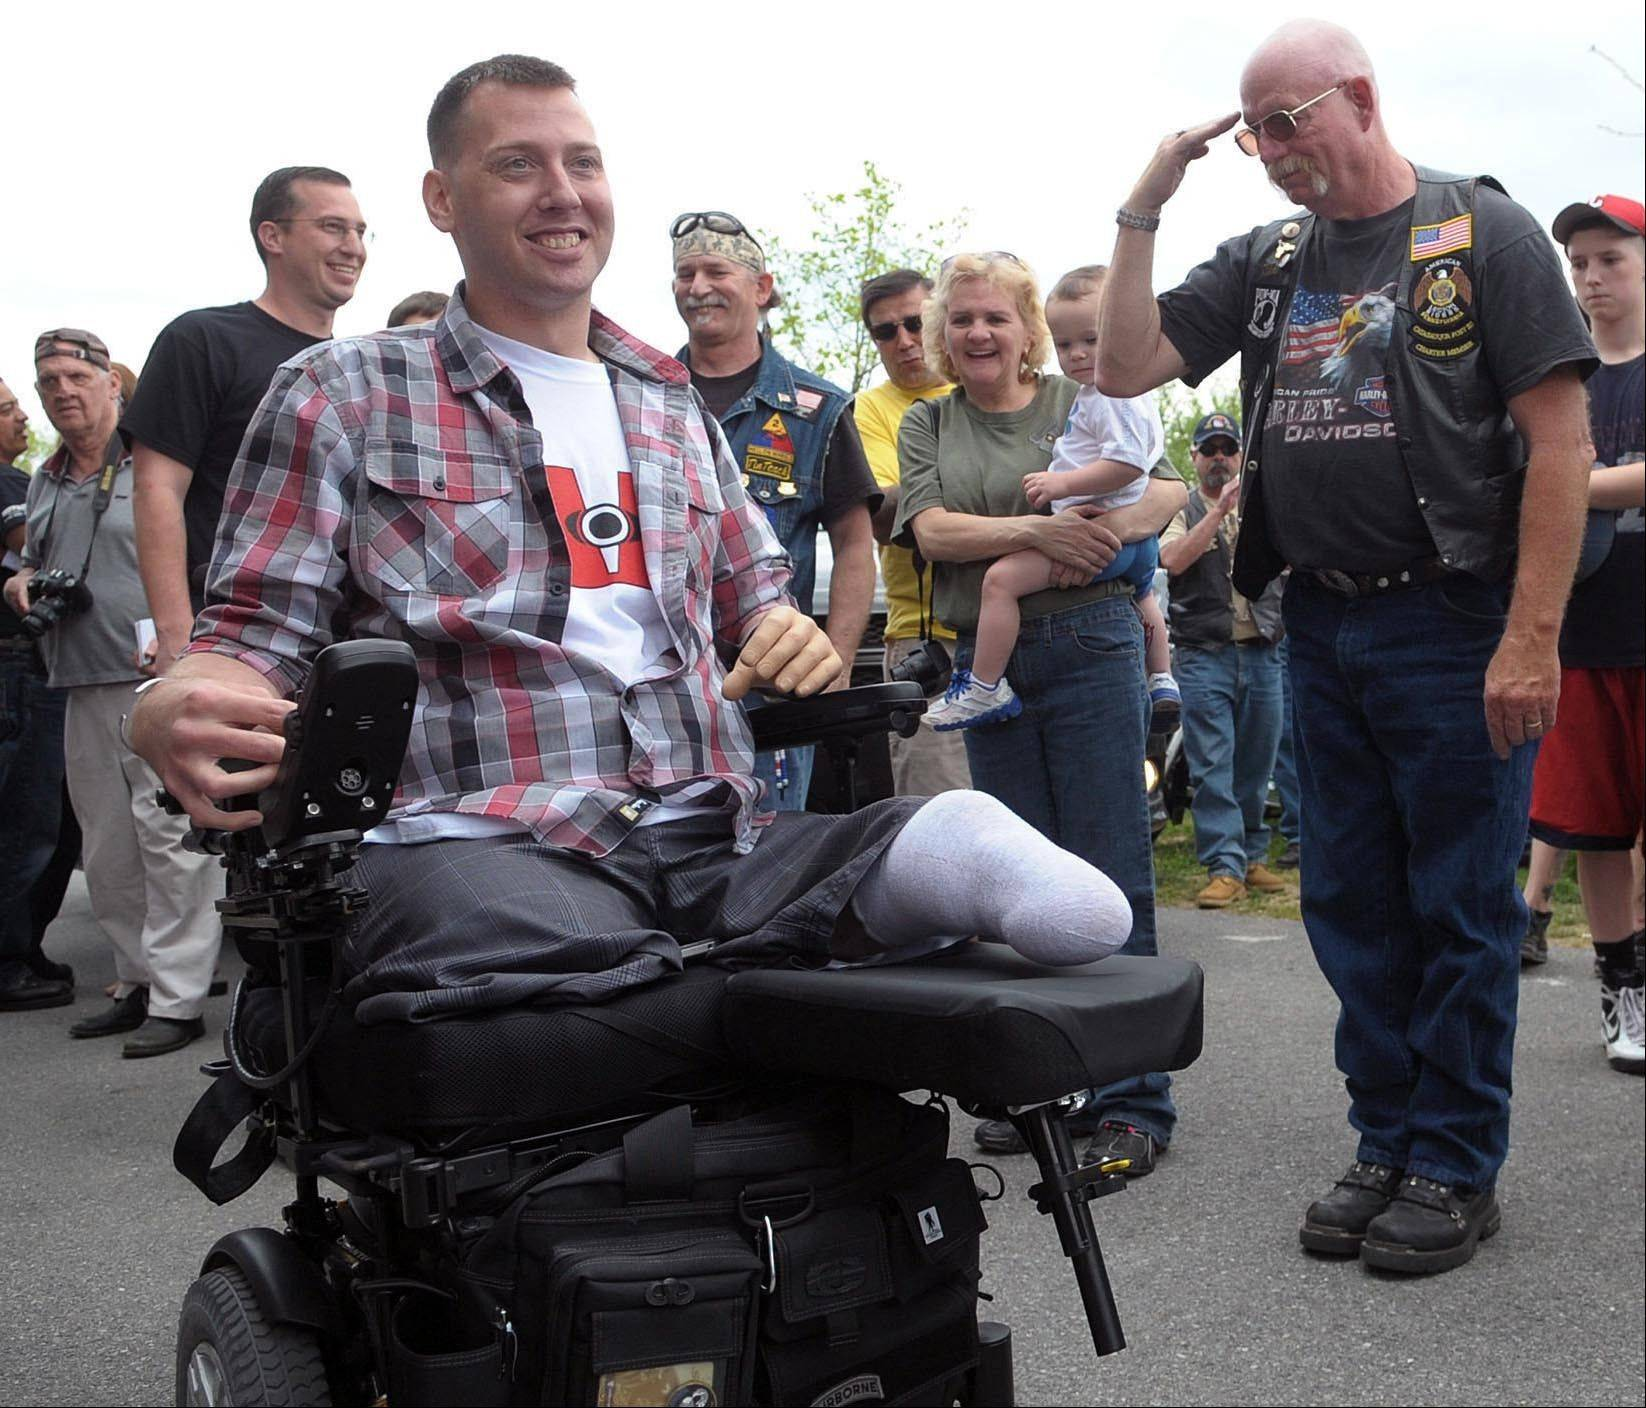 U.S. Army Sgt. Adam Keys, left, who was wounded in Afghanistan in 2010, is greeted by hundreds of community members during a homecoming ceremony at Cementon Park in Whitehall Township, Pa., on April 21. A staggering 45 percent of the 1.6 million veterans from the wars in Iraq and Afghanistan are now seeking compensation for disabilities they say are service-related -- more than double the 21 percent who filed such claims after some previous wars, according to top government officials. The new veterans have different types of injuries than previous veterans did, in part because improvised bombs have been the main weapon and because body armor and improved battlefield care allowed many of them to survive wounds that in past wars proved fatal.